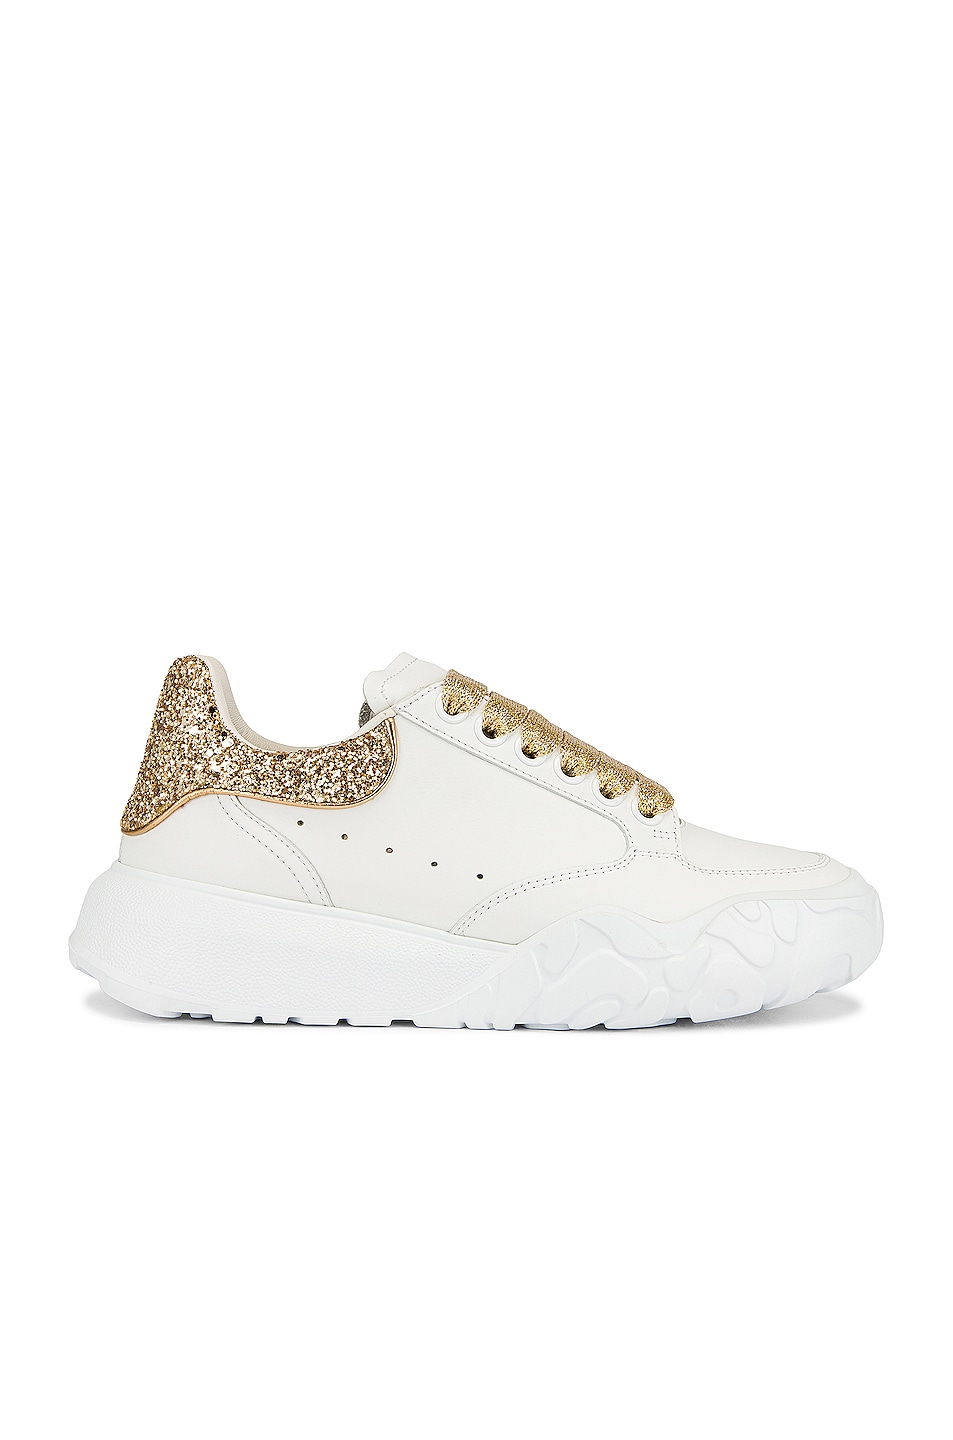 Image 1 of Alexander McQueen Leather Glitter Sneakers in White & Gold